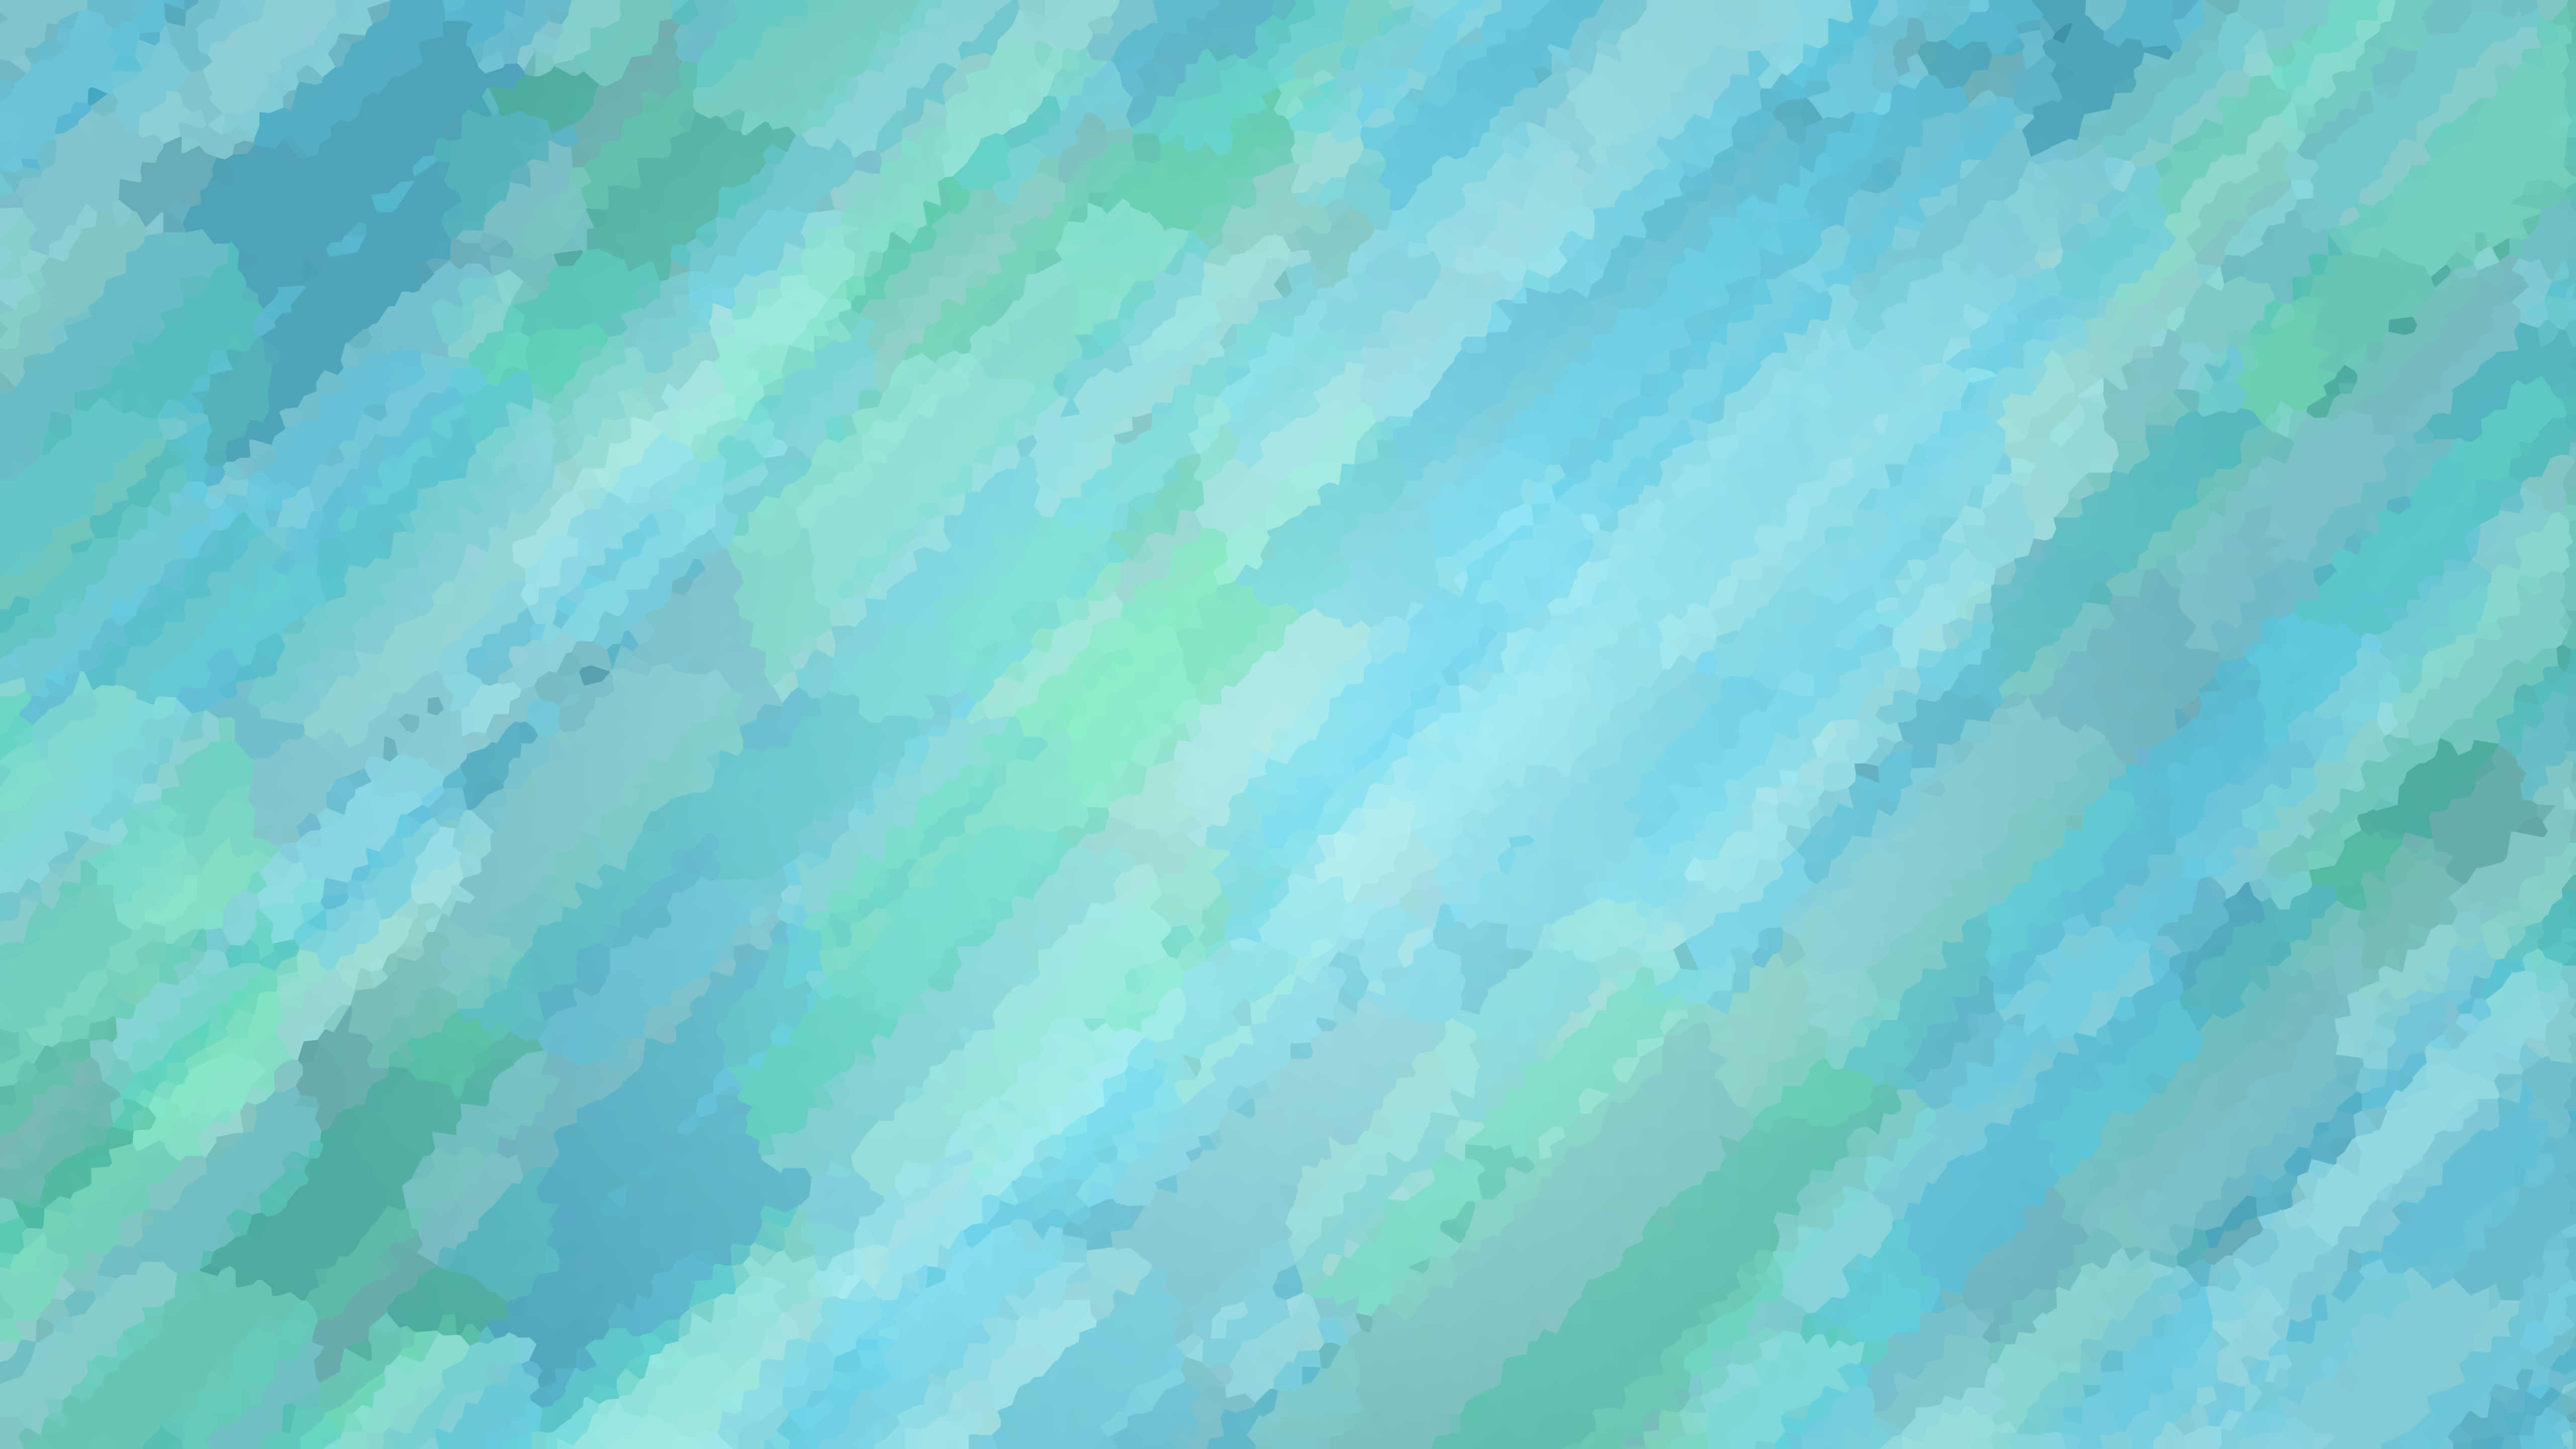 Blue and green pattern wallpaper - photo#3